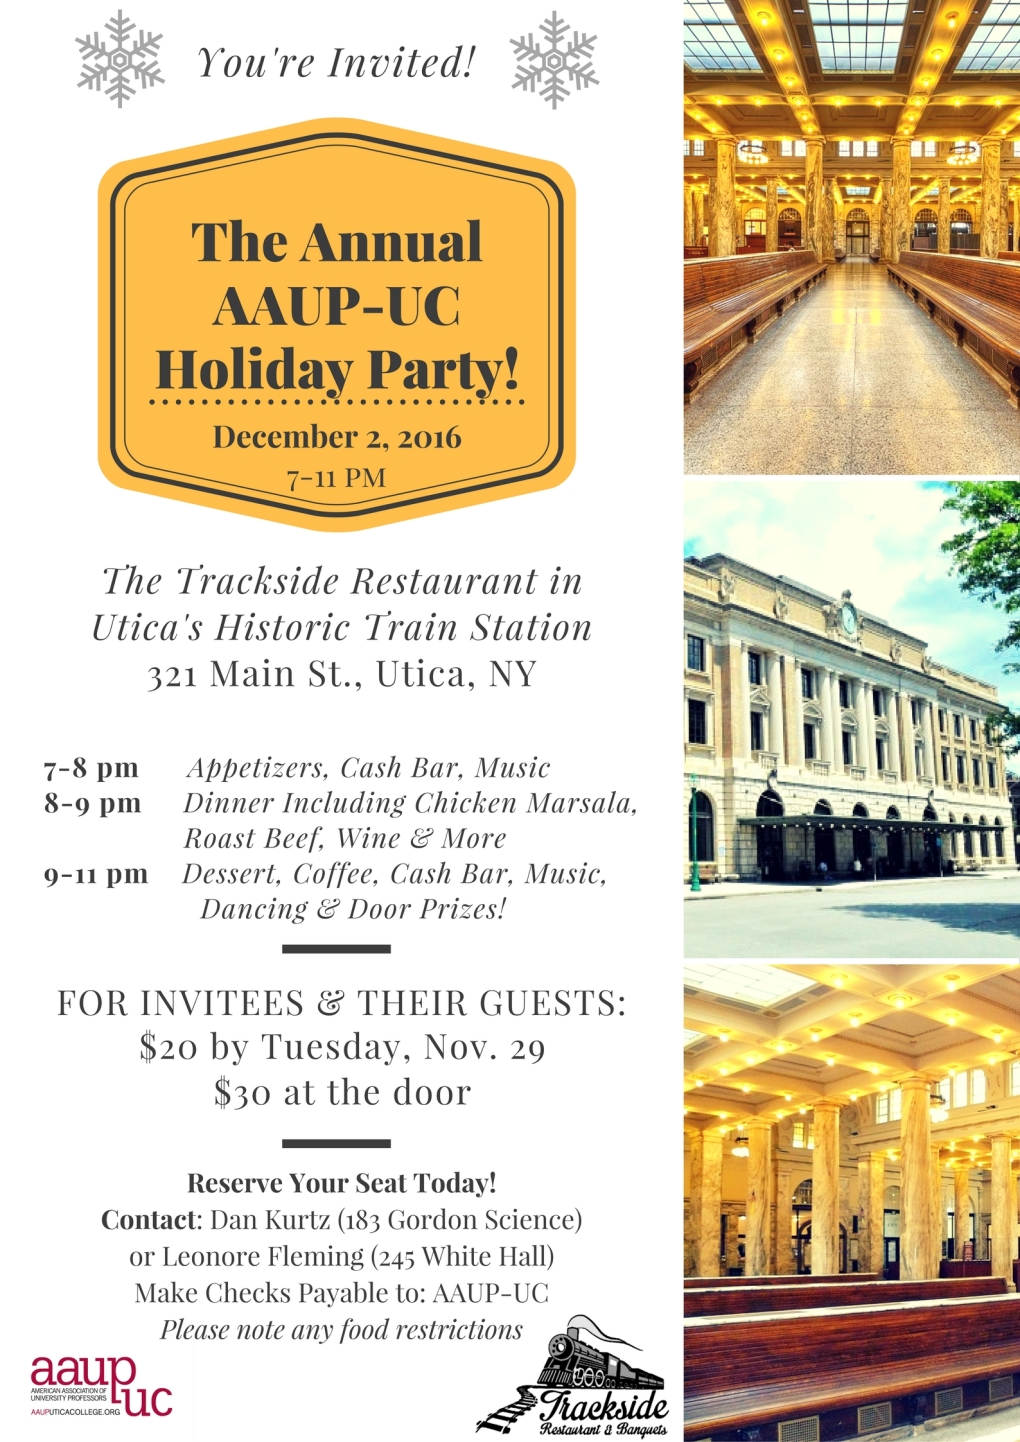 aaupuc-holiday-party-2016-print